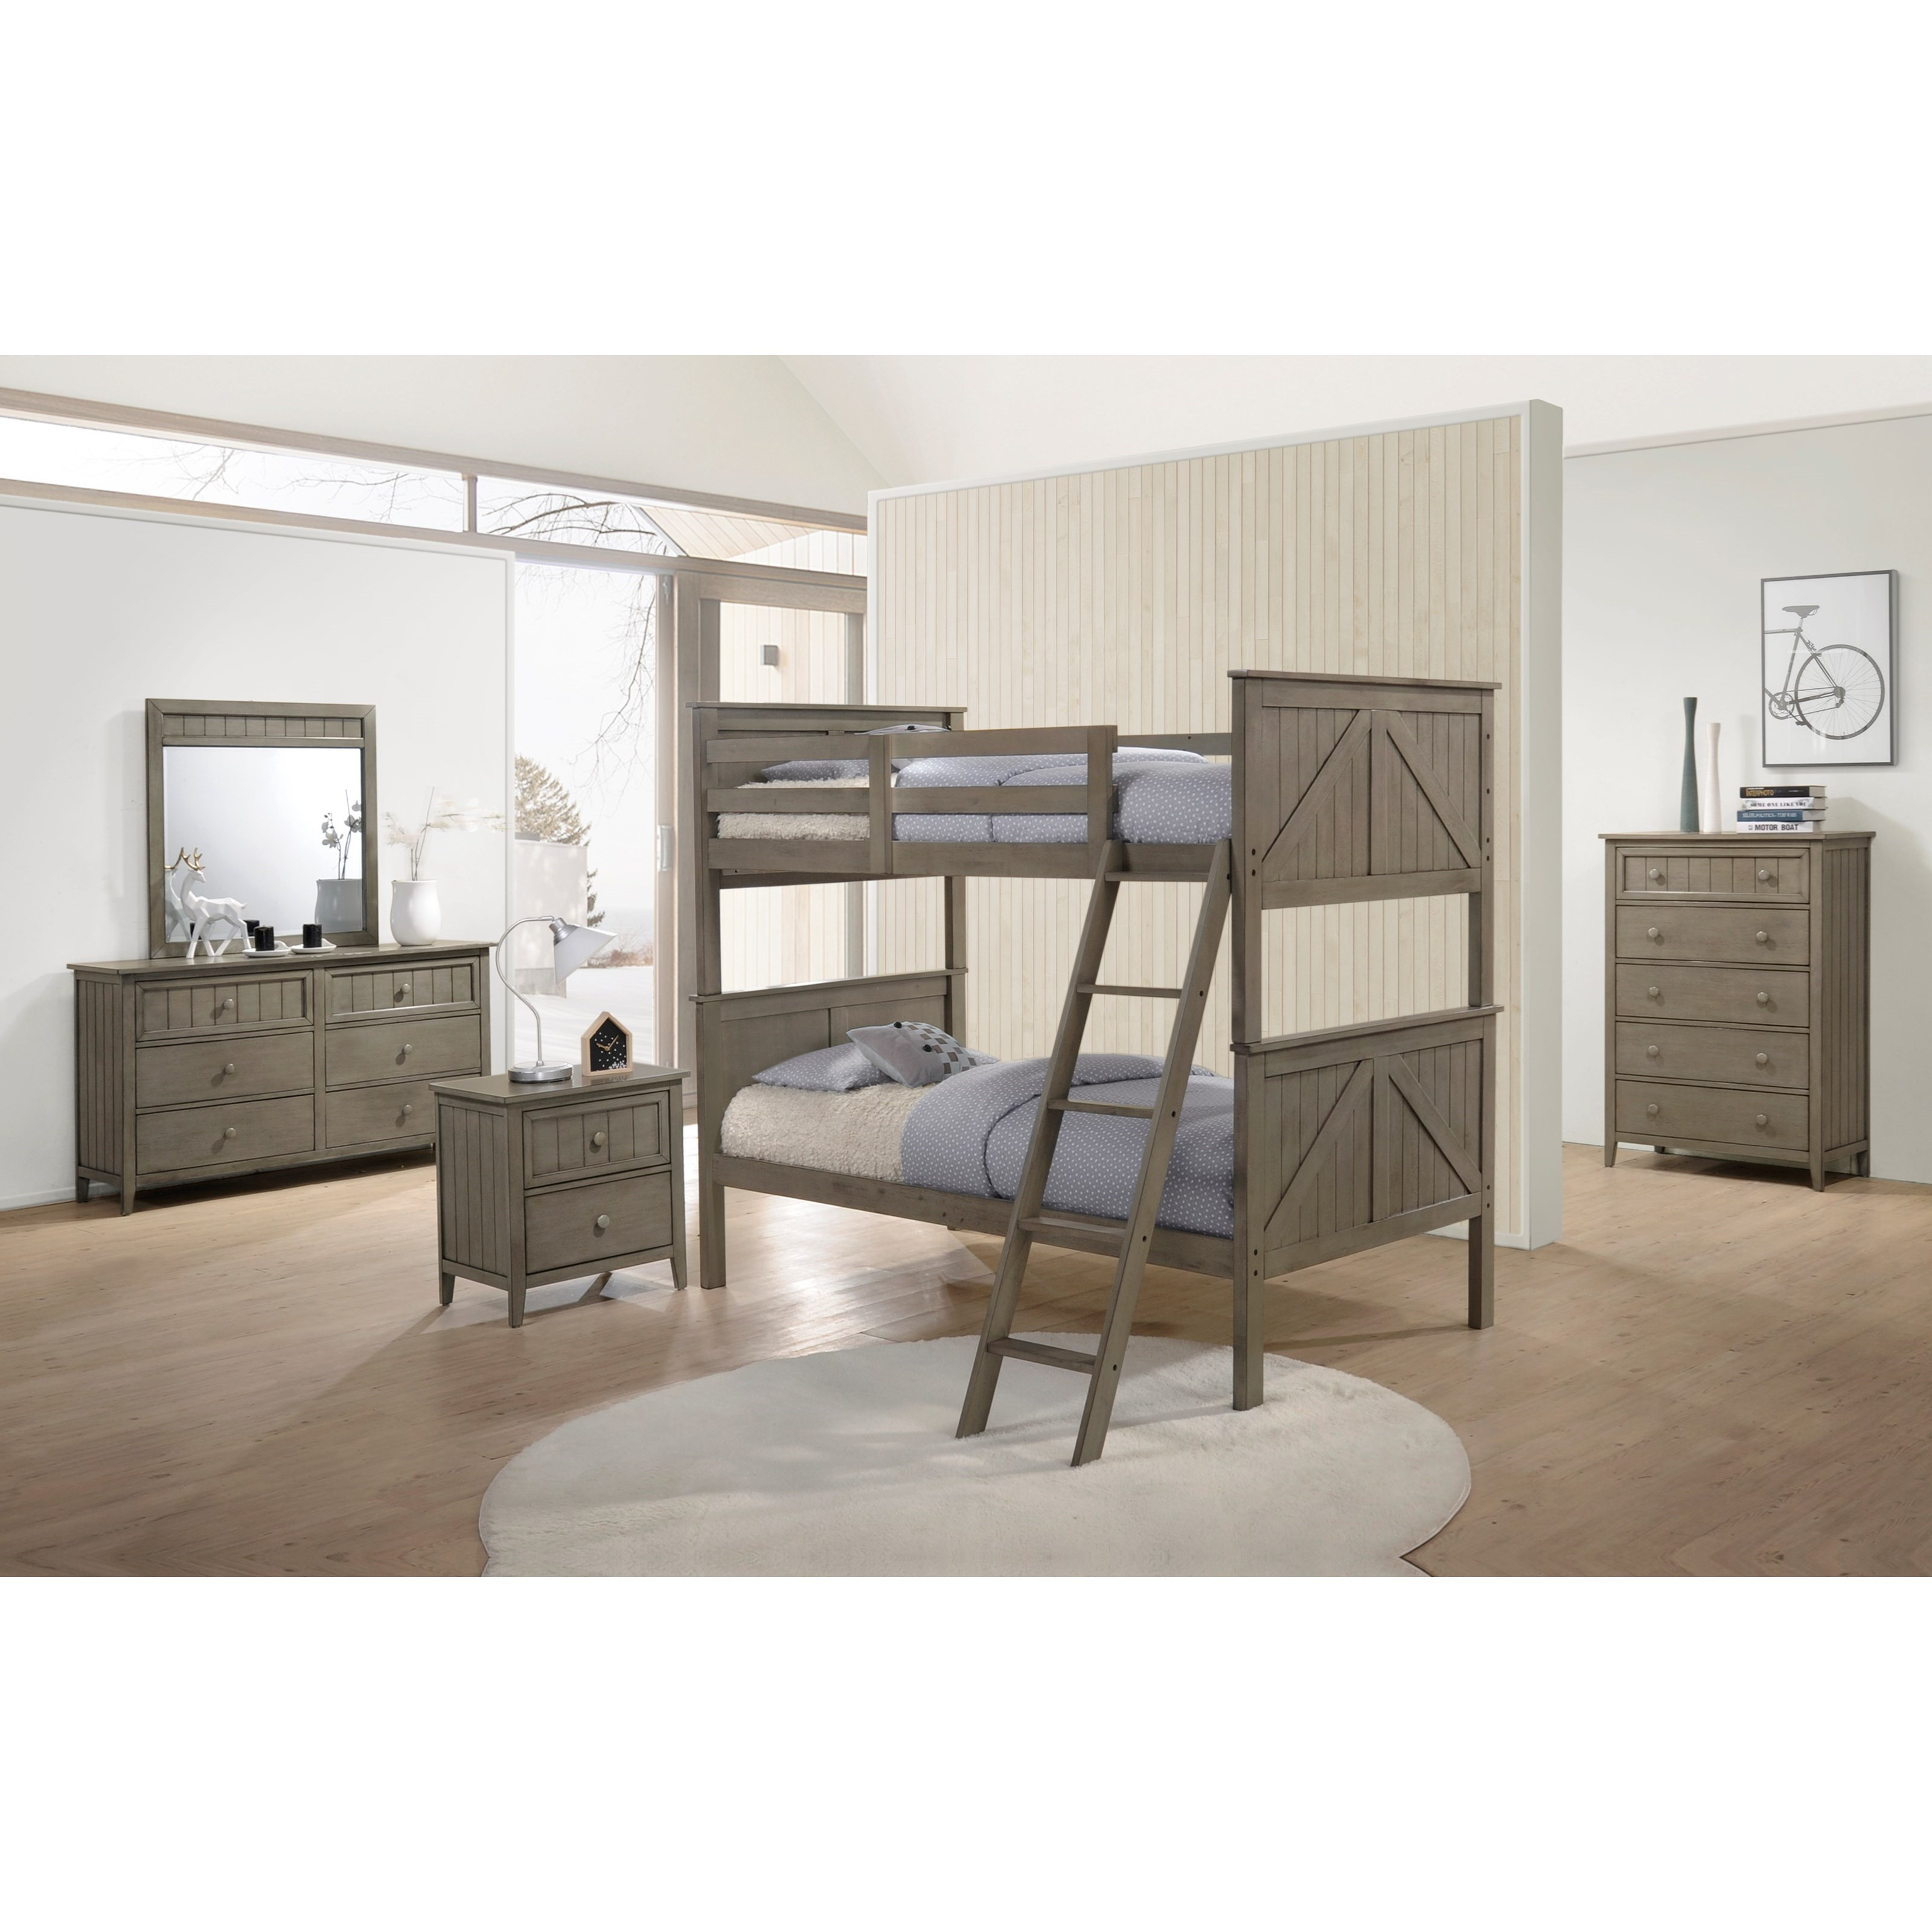 Ashland Twin Over Twin Bunkbed Room Group by United Furniture Industries at Dream Home Interiors